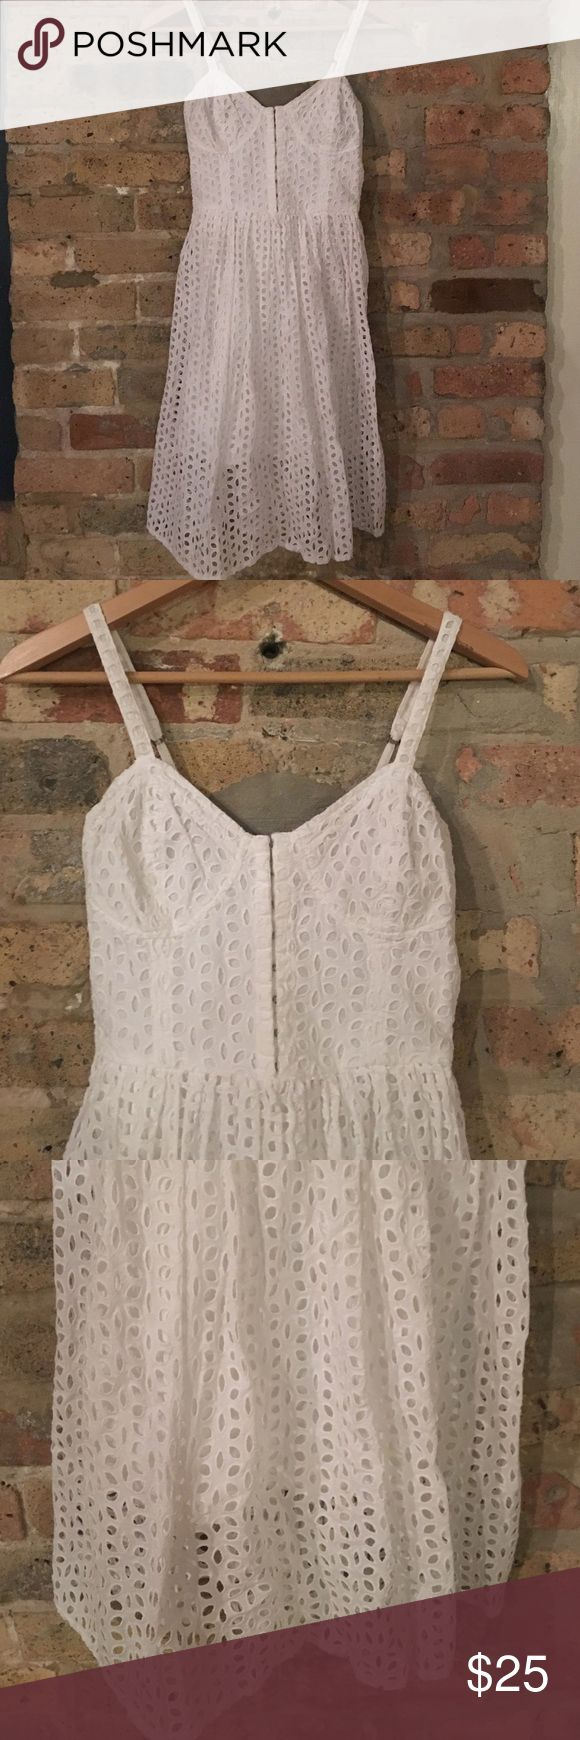 LAST CHANCE Abercrombie bustier eyelet dress Worn once Abercrombie & Fitch Dresses Midi